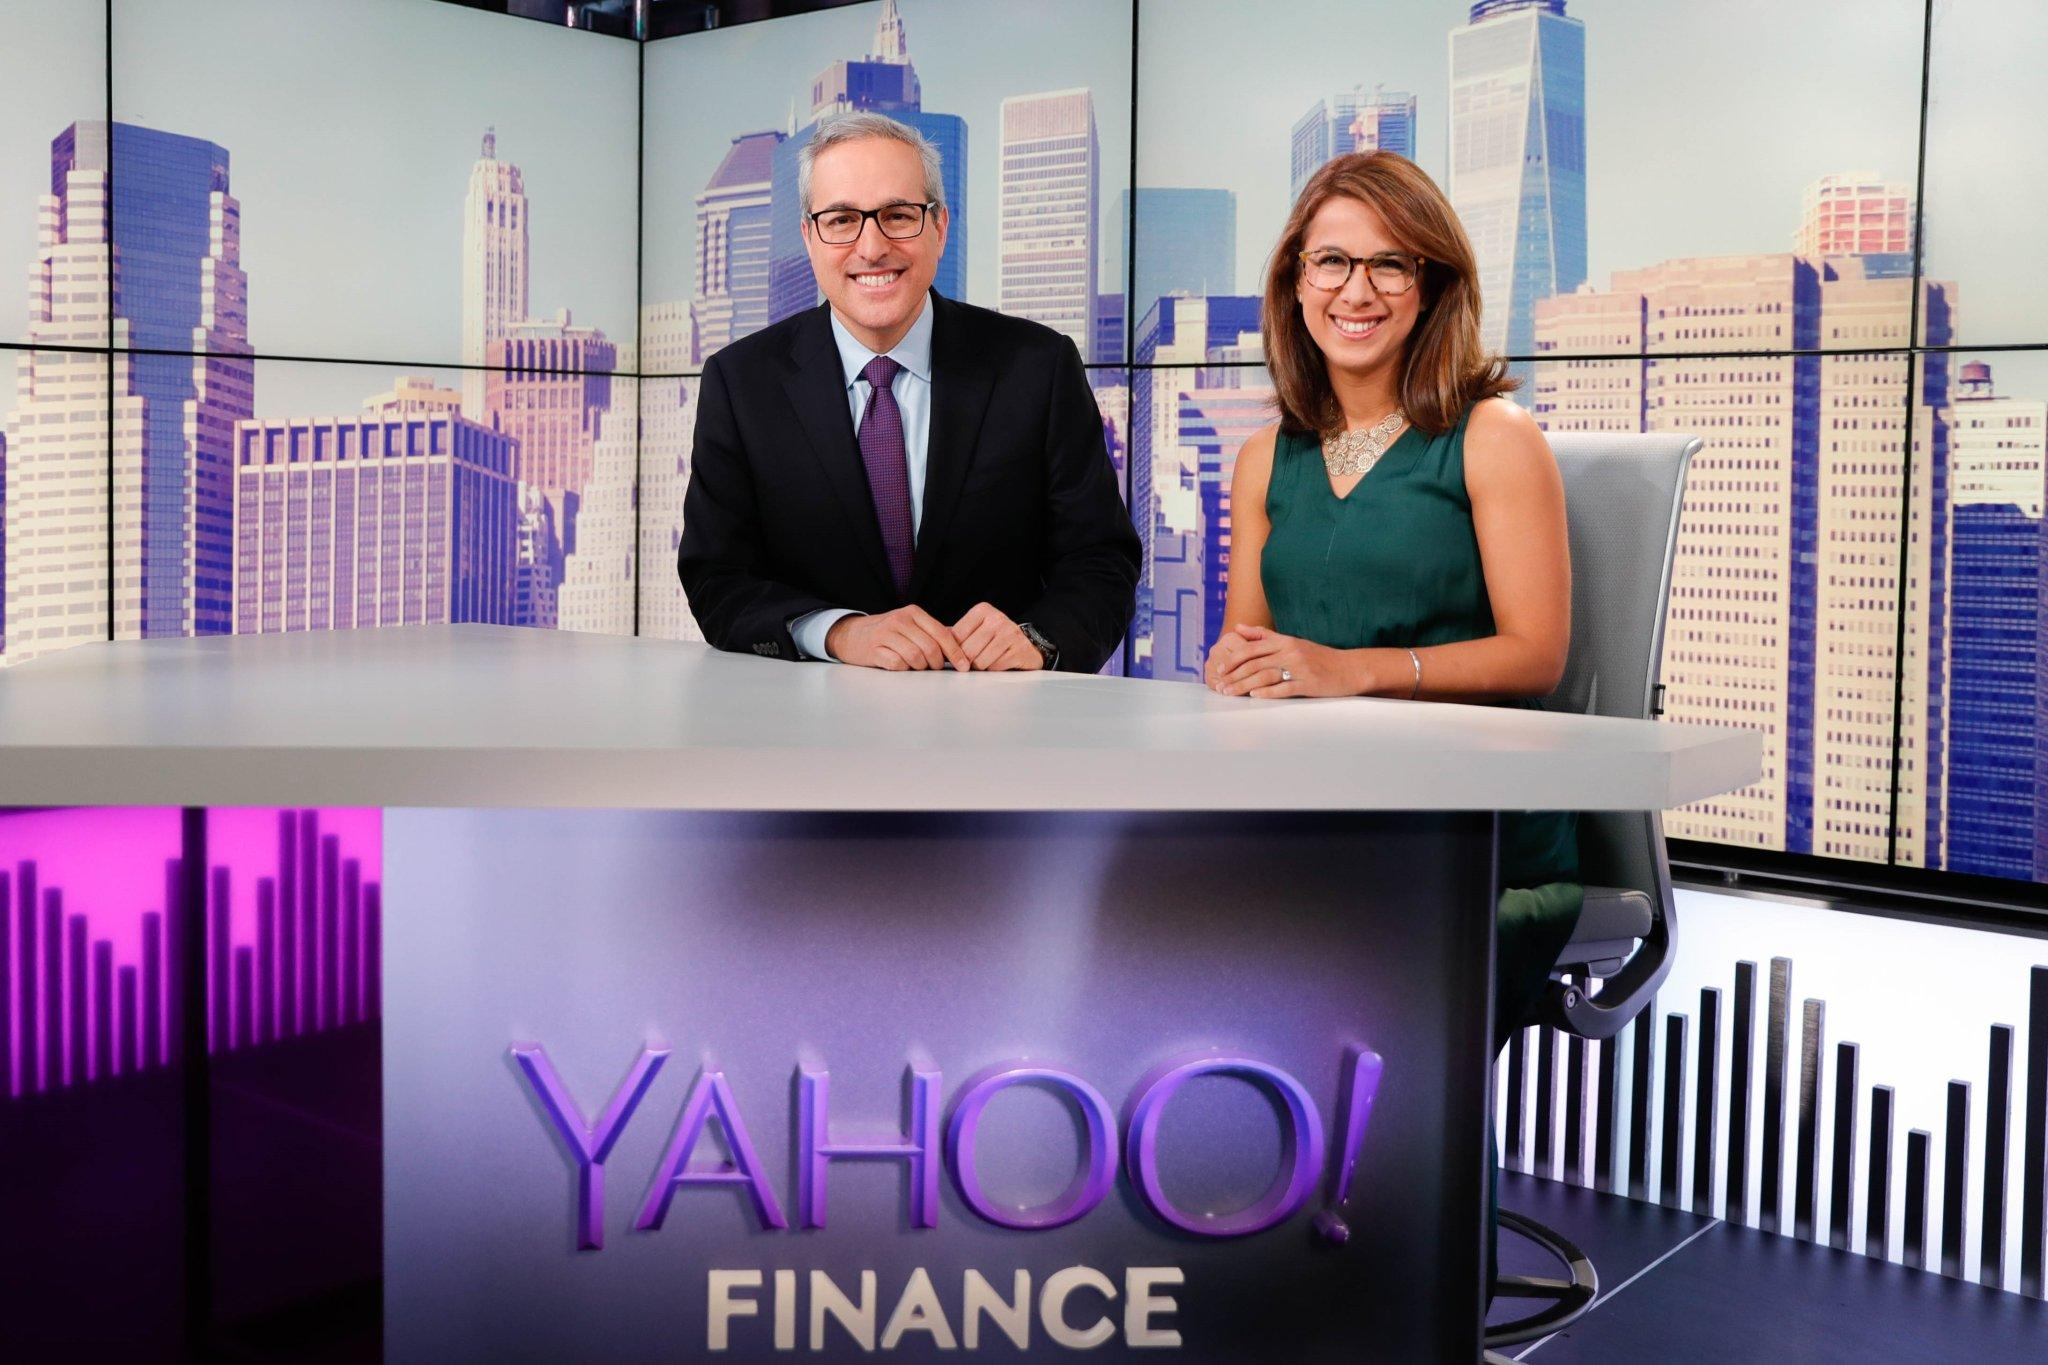 Yahoo Finance's expanding live programming